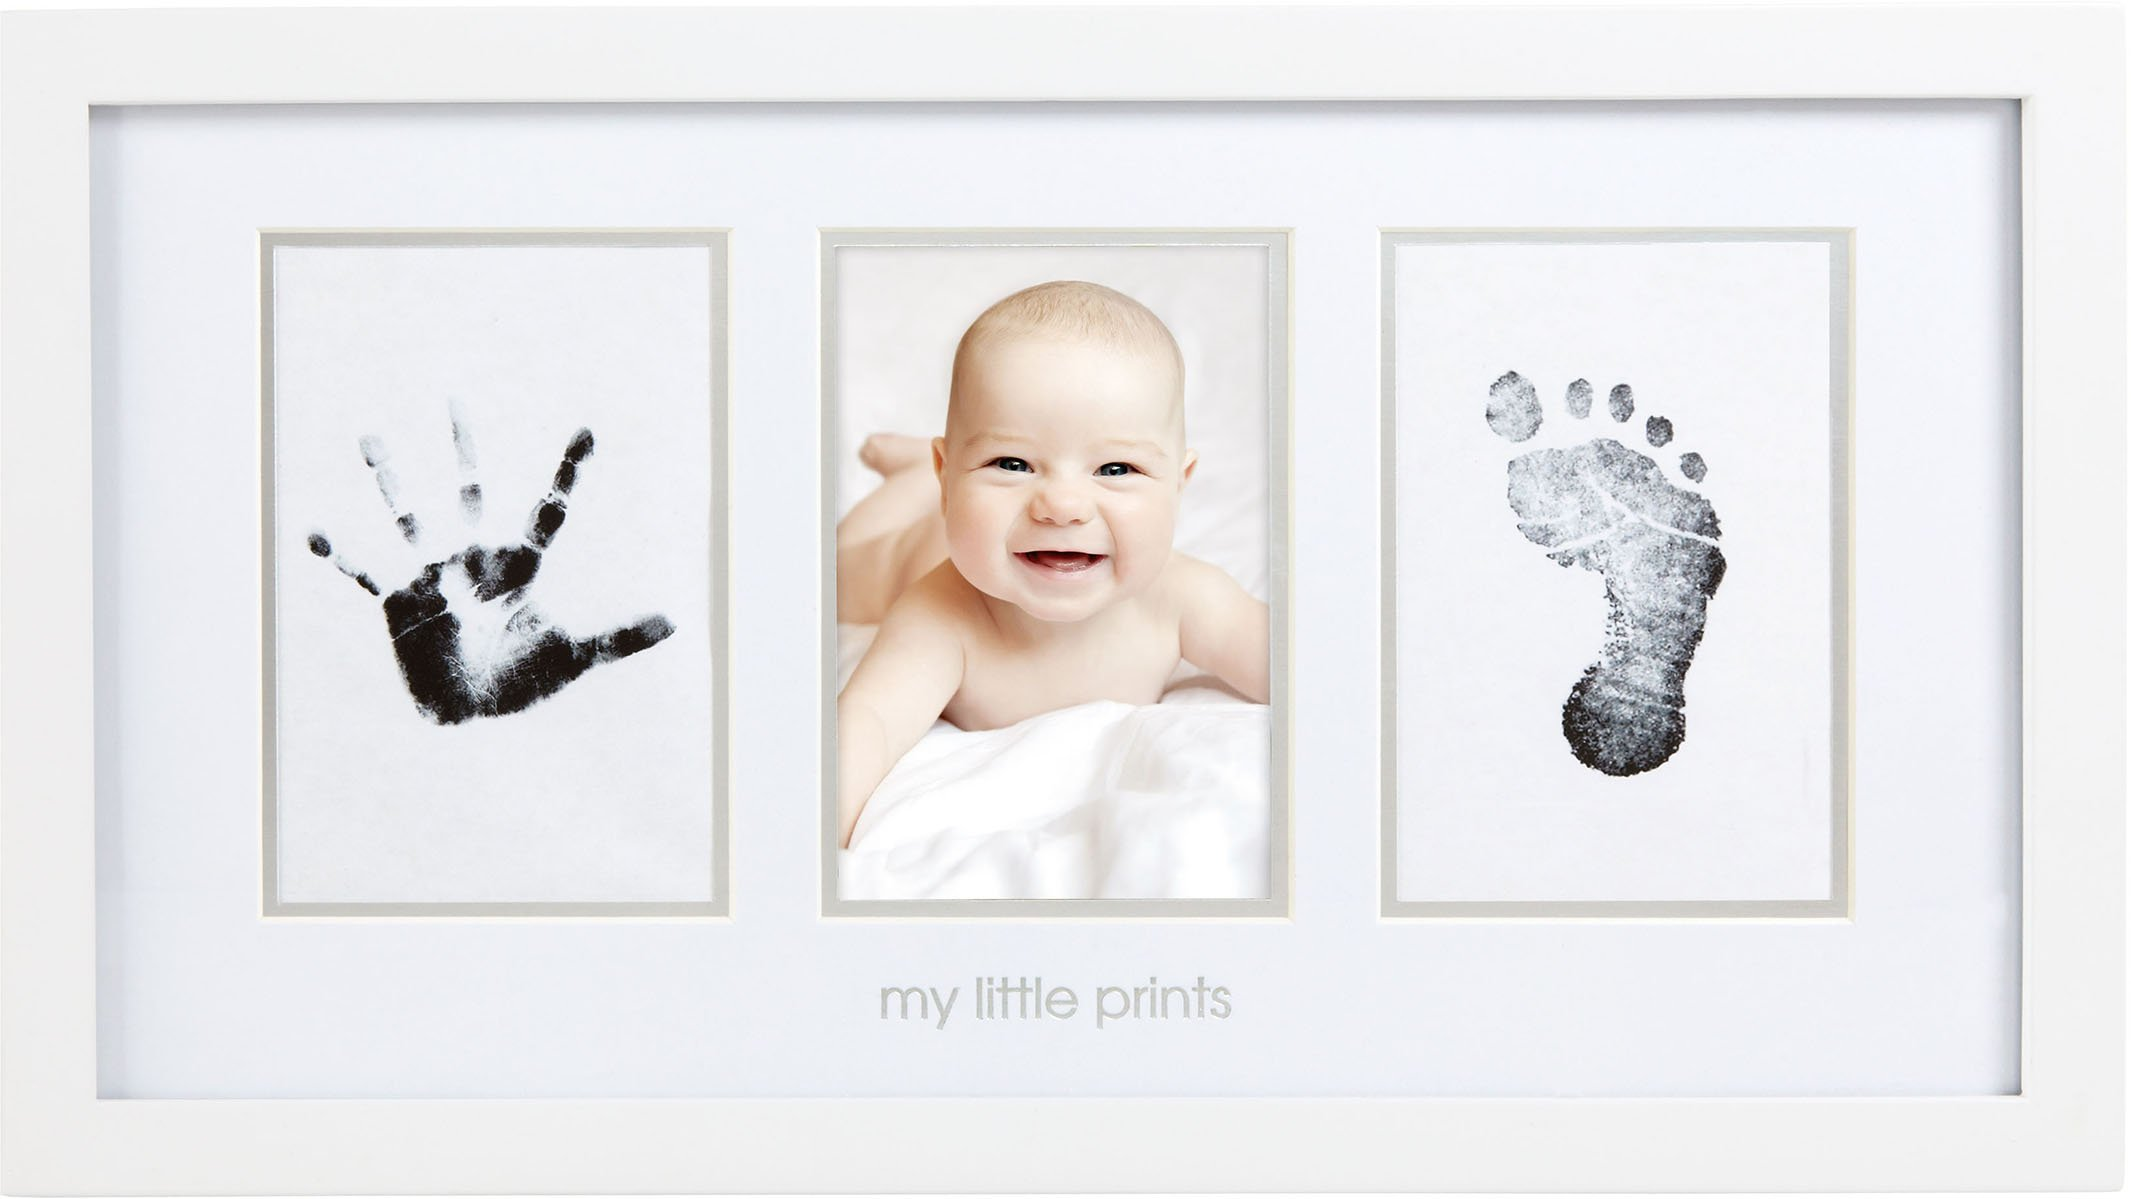 Pearhead Babyprints Newborn Baby Handprint and Footprint Photo Frame Kit and Included Safe For Baby Clean-Touch Ink Pad, White by Pearhead